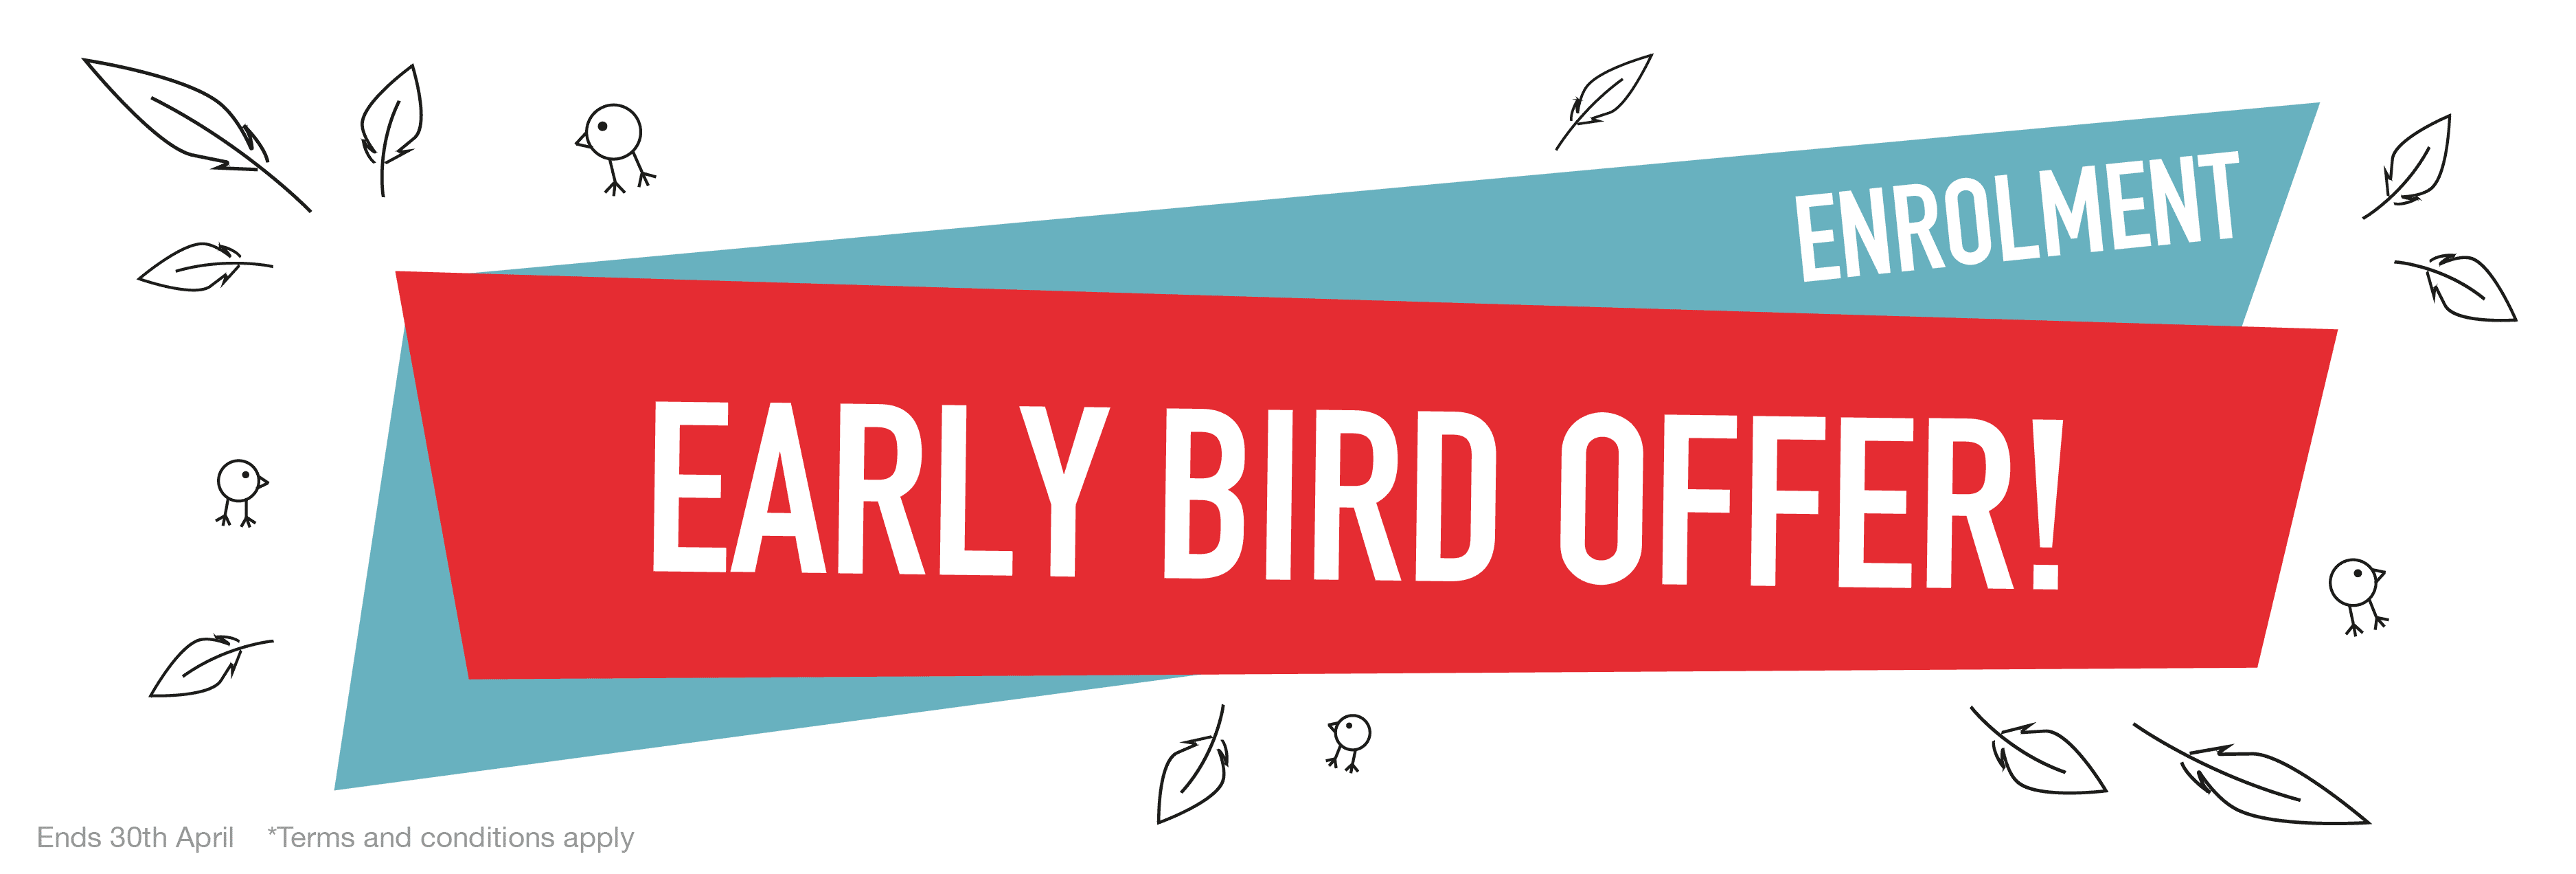 Early Bird Enrolment Offer - Safetynet